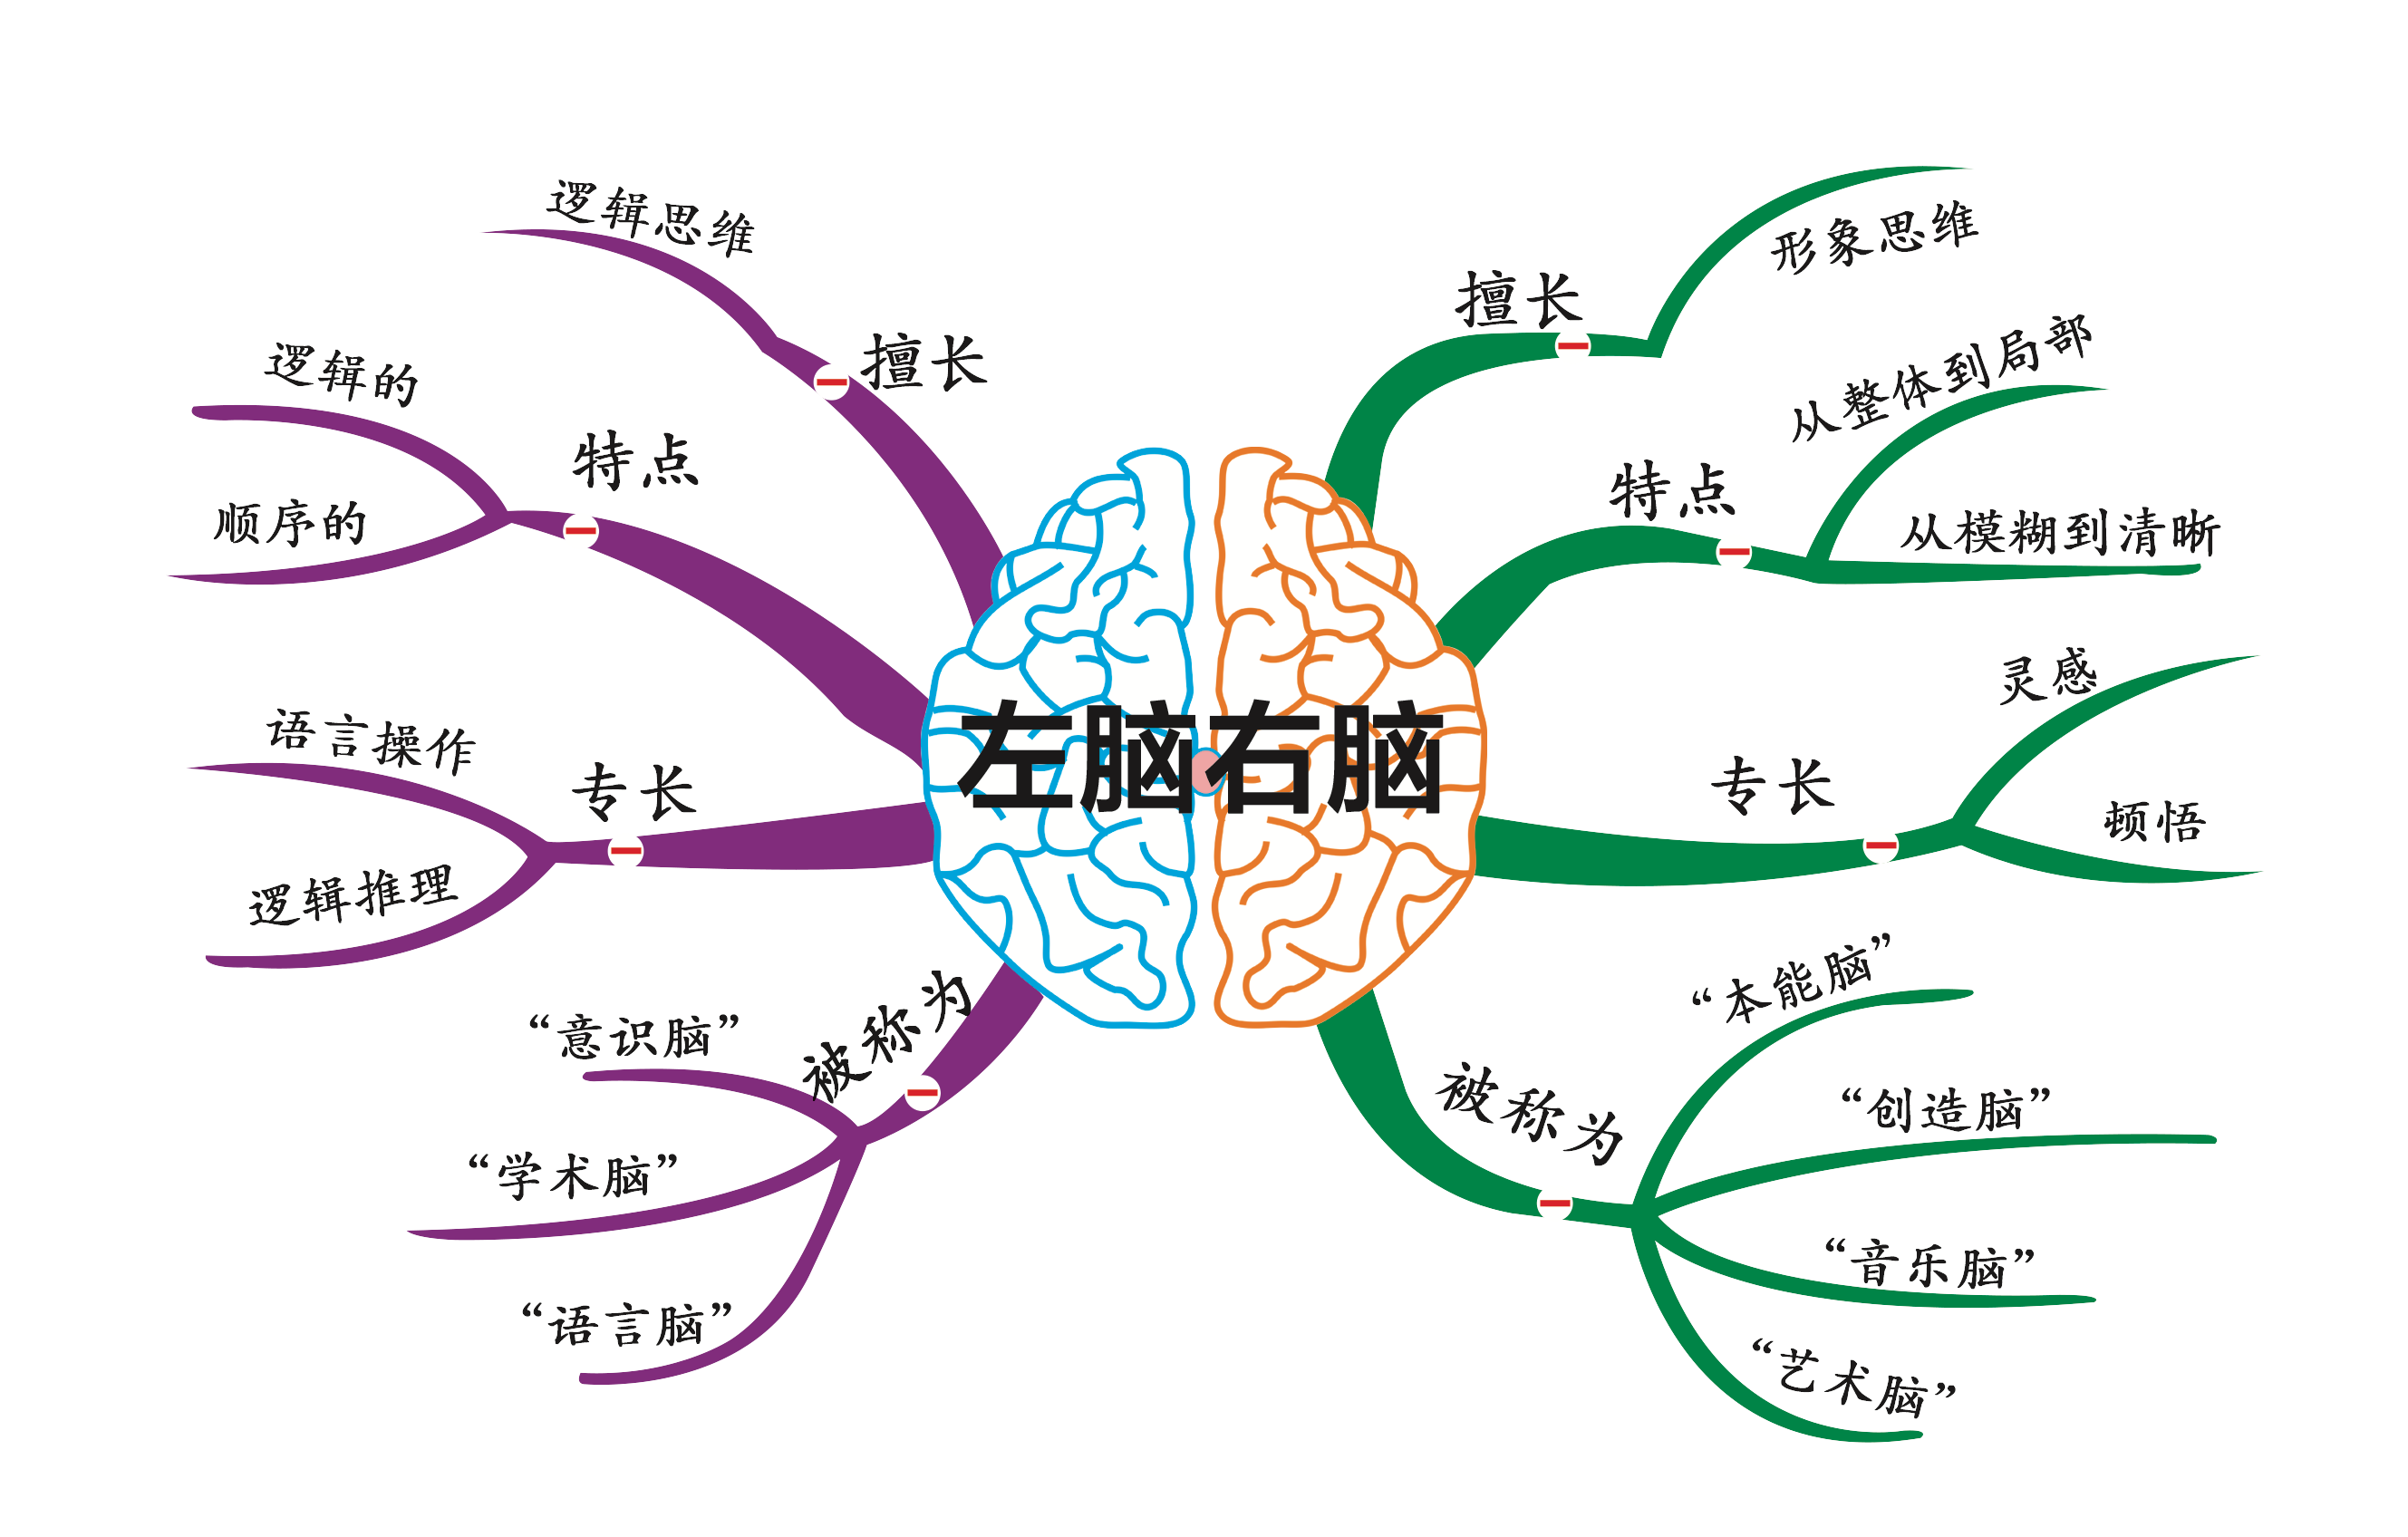 mind_mapping